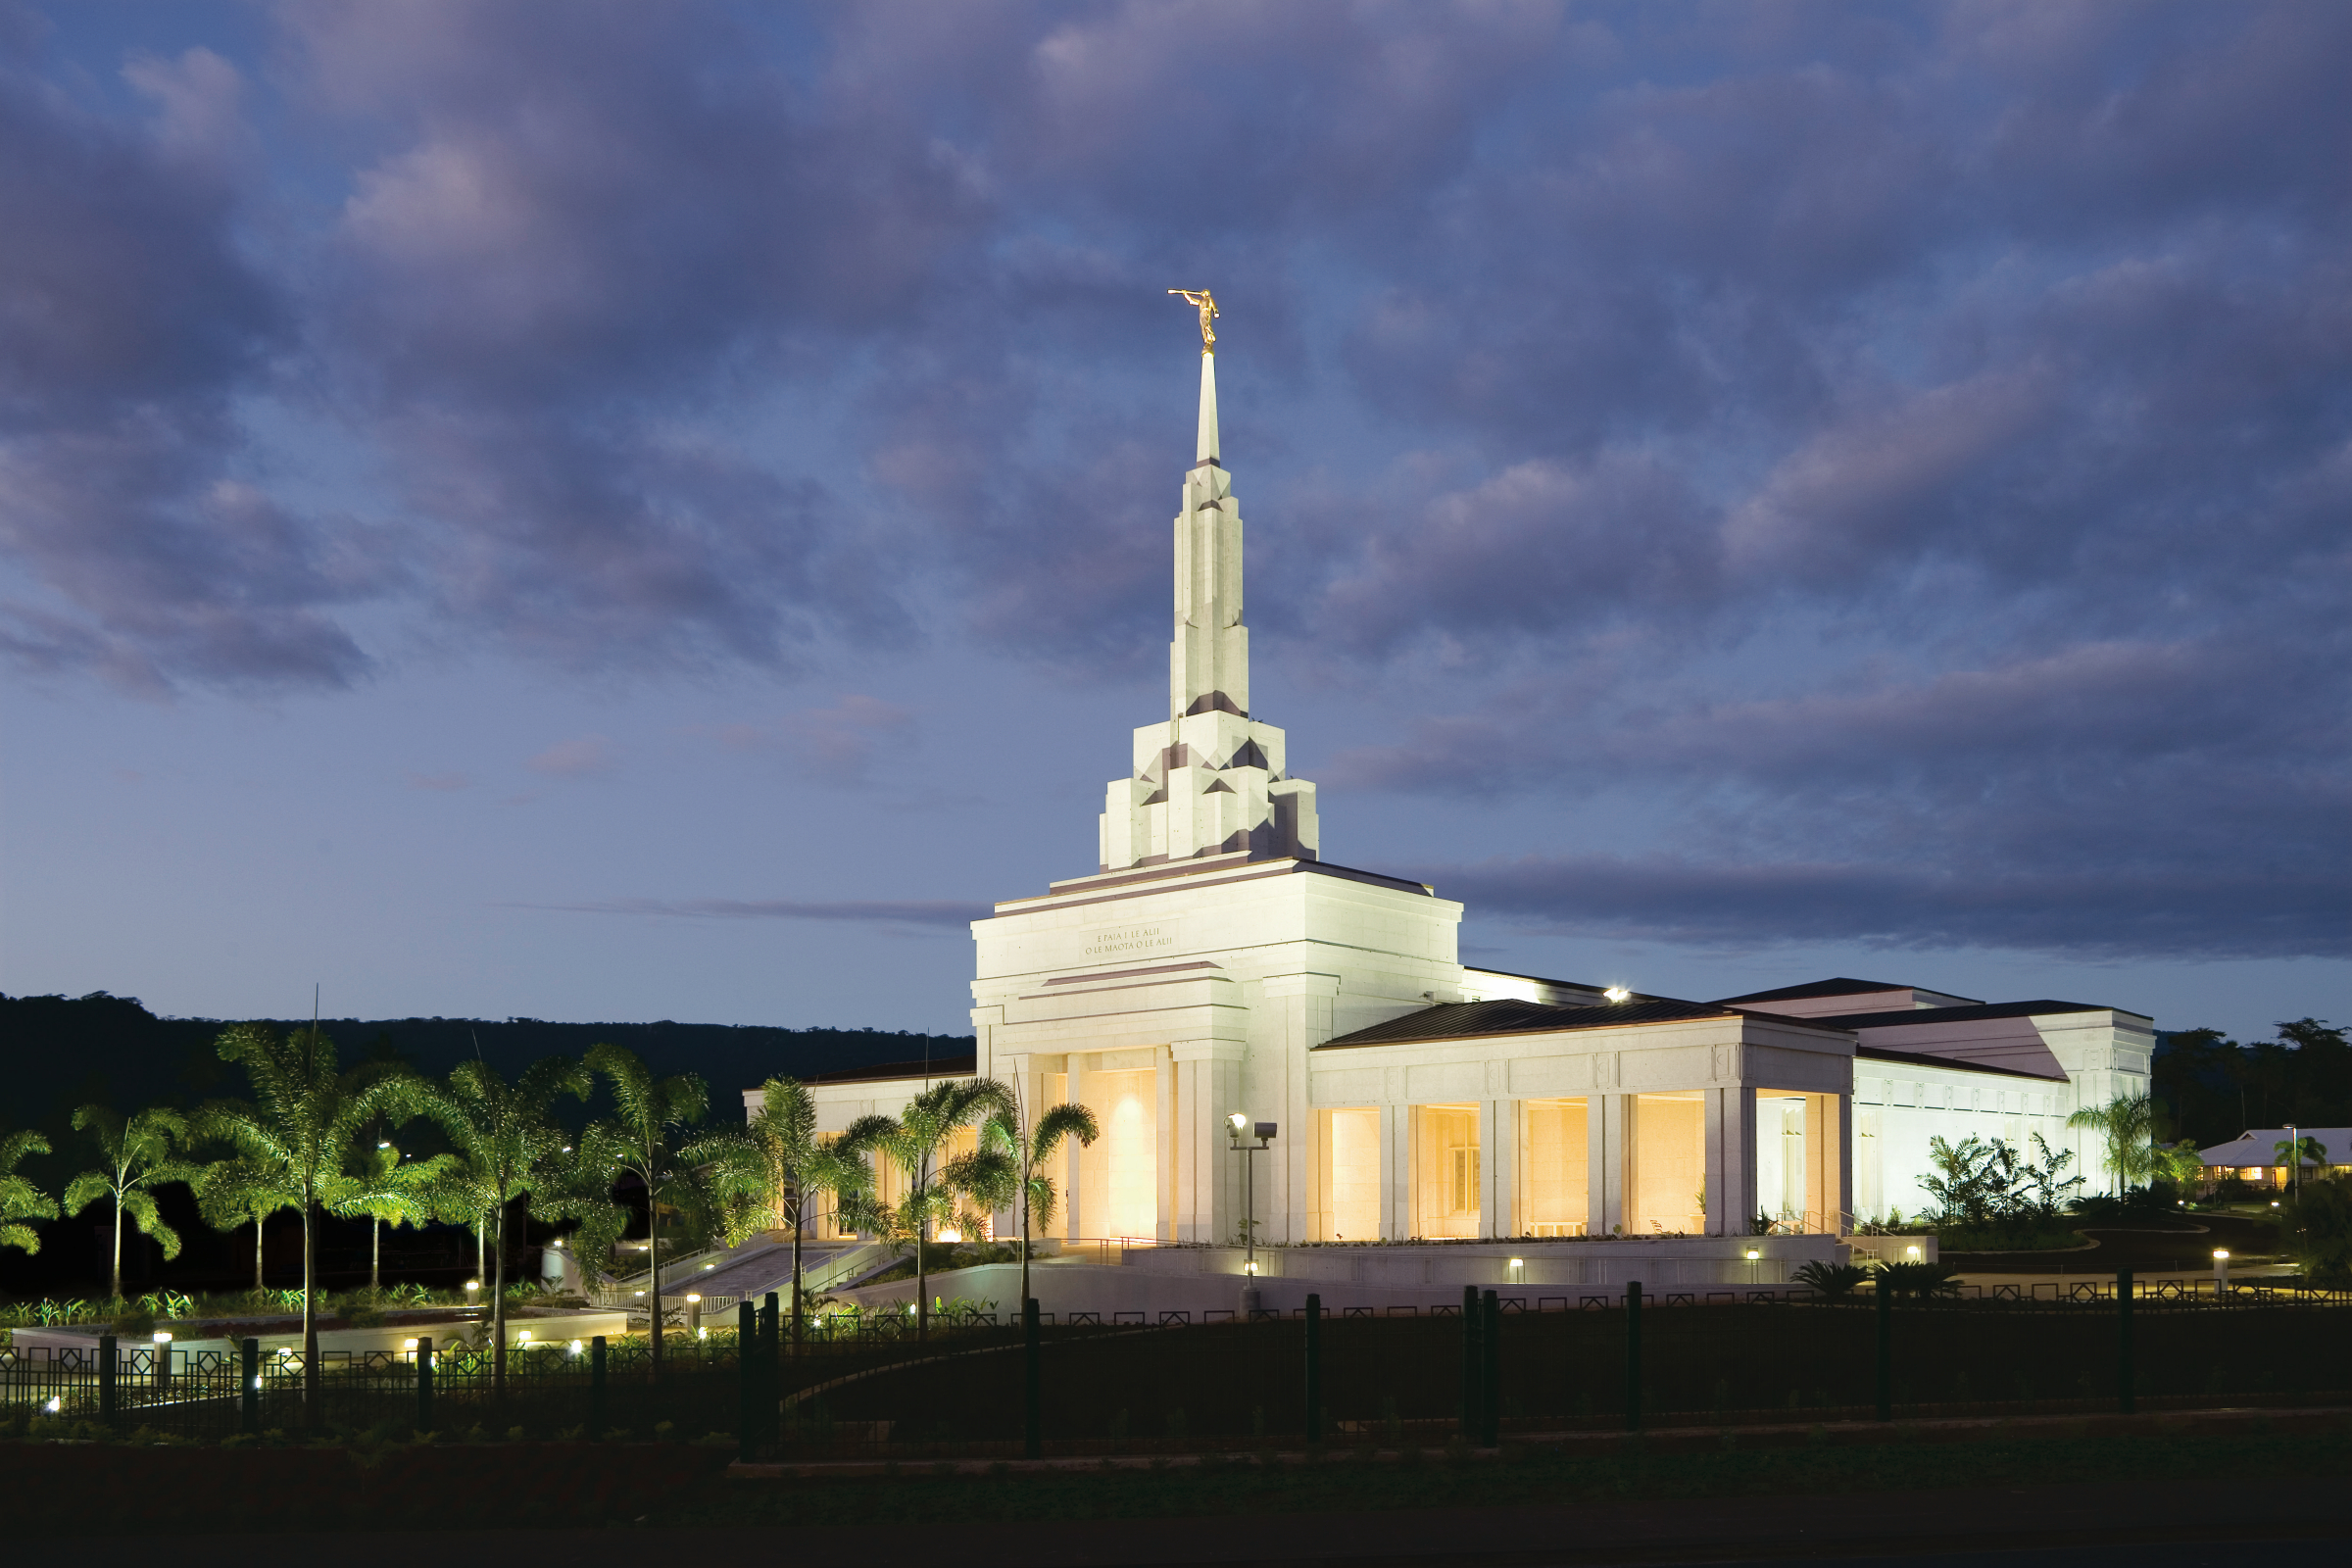 Church Of Jesus Christ Of Latter Day Saints | 15782 Farmway Rd, Caldwell, ID, 83605 | +1 (208) 453-9118